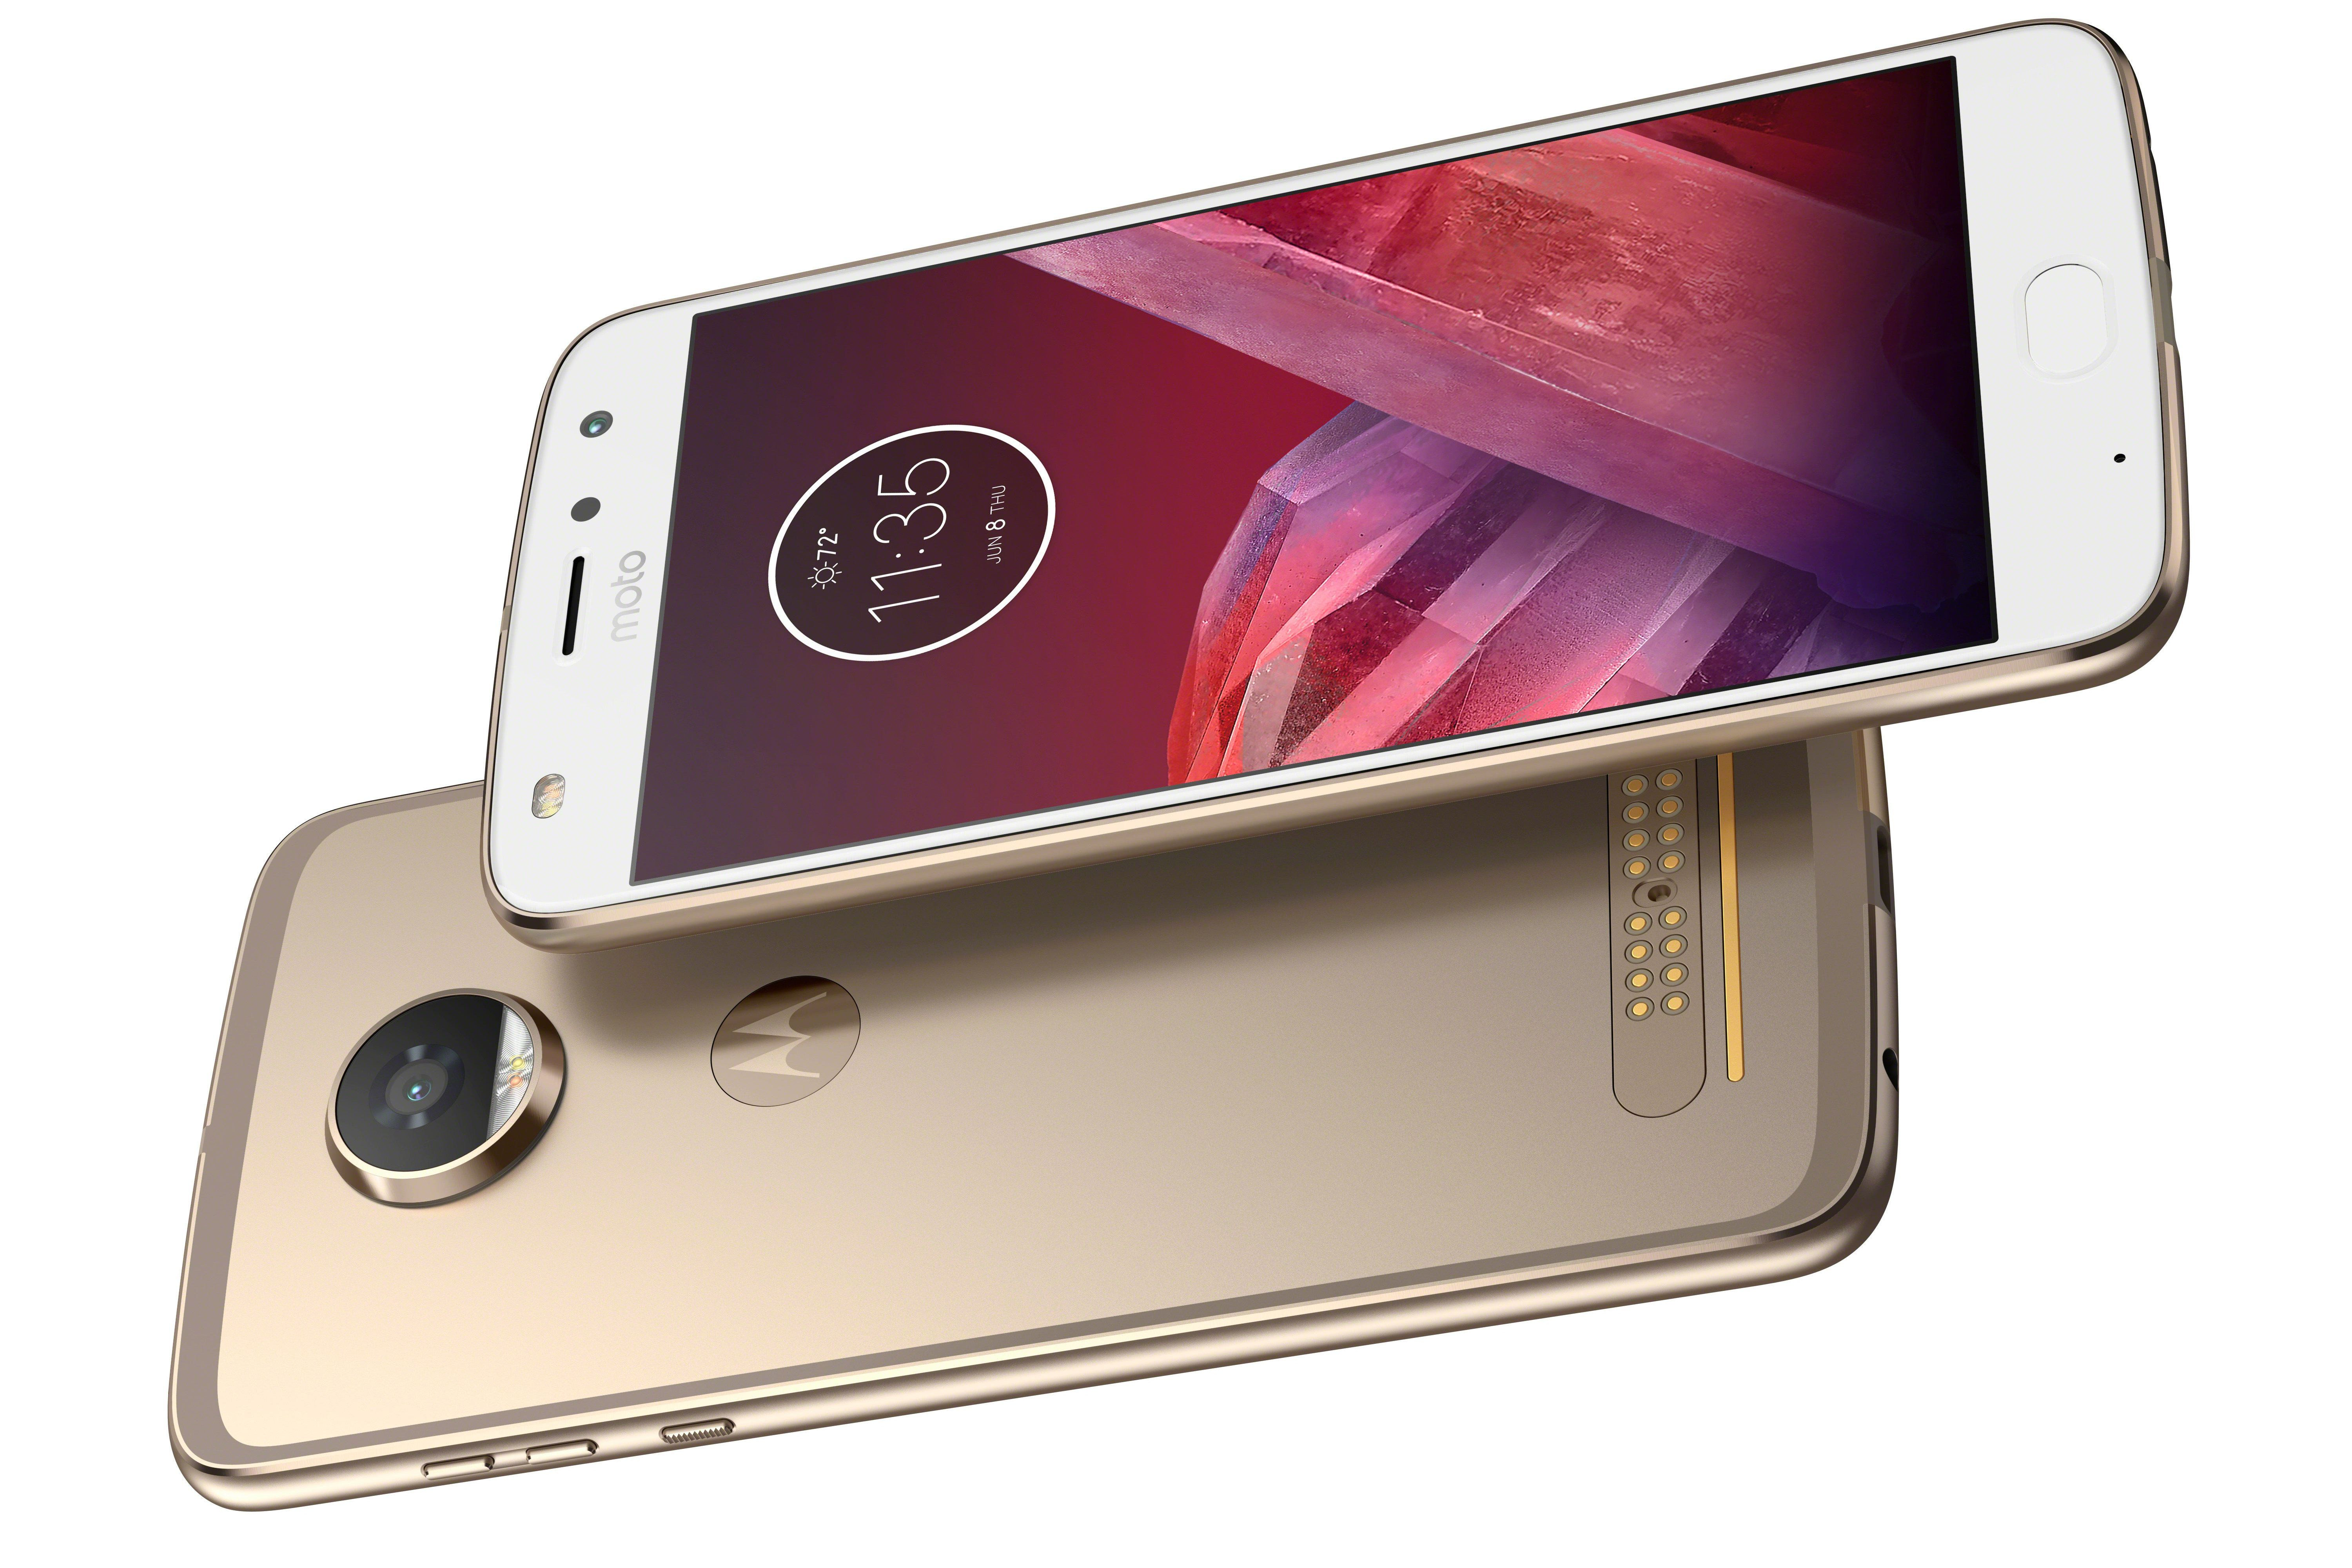 Moto Z2 Play front/back